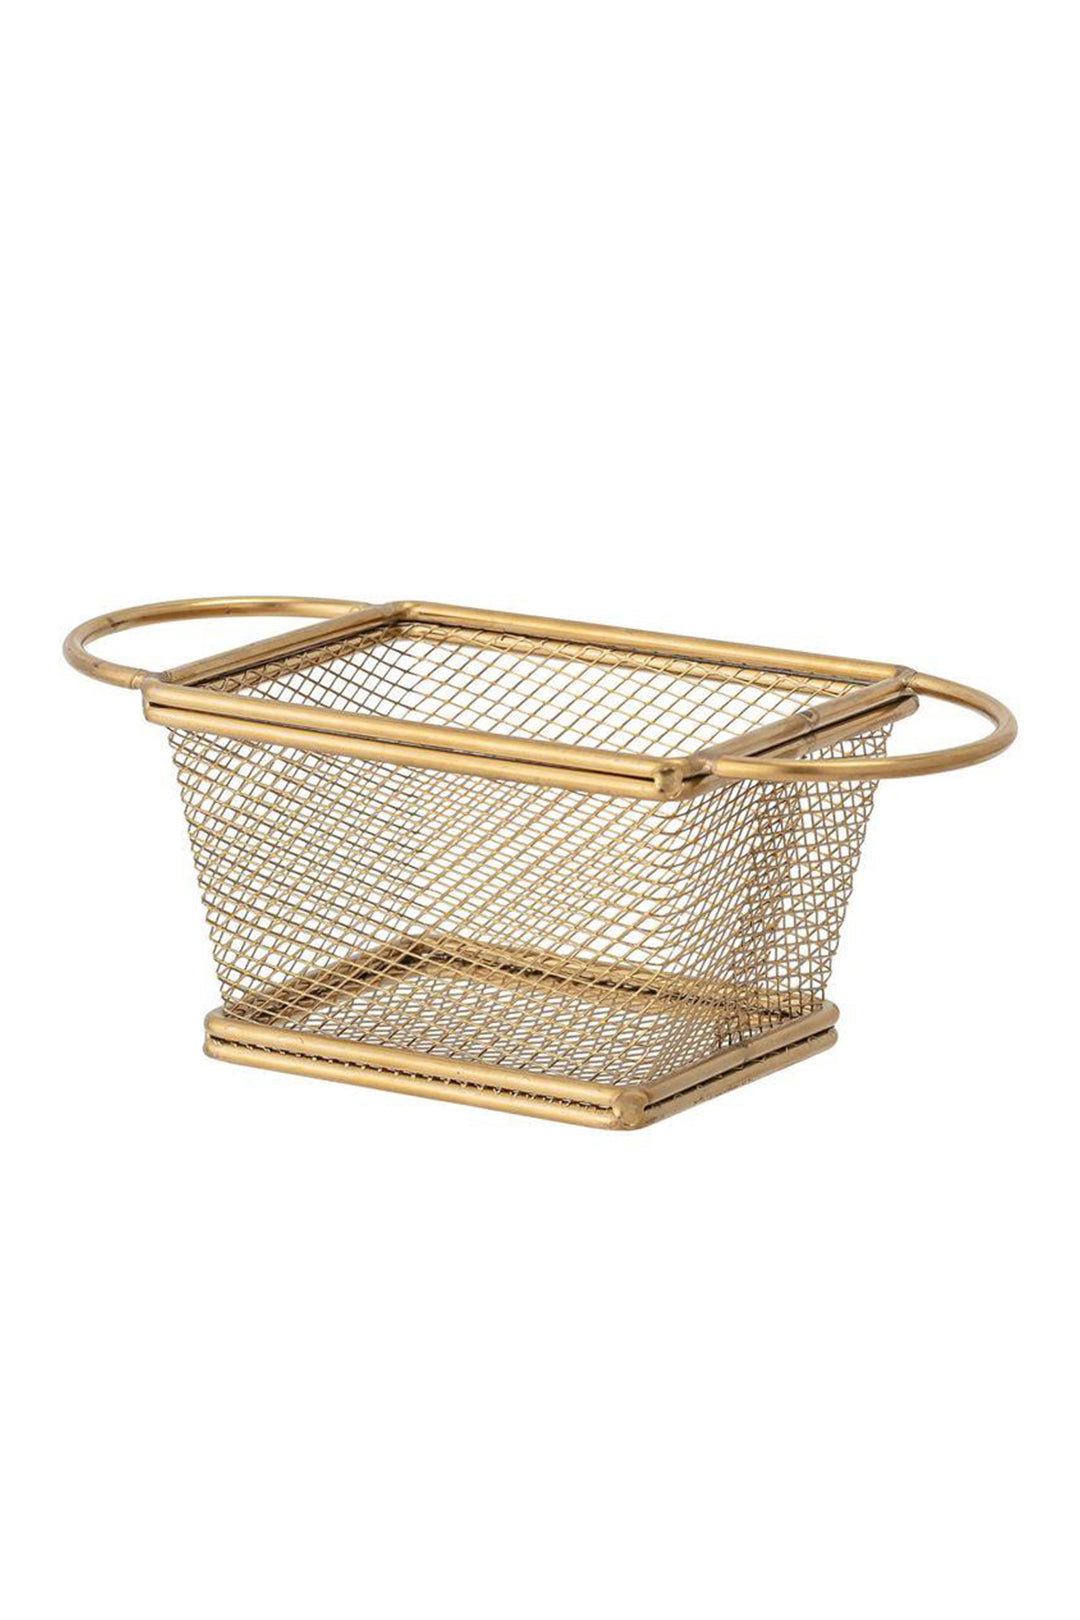 Stainless Steel Mesh Basket w/Gold Finish